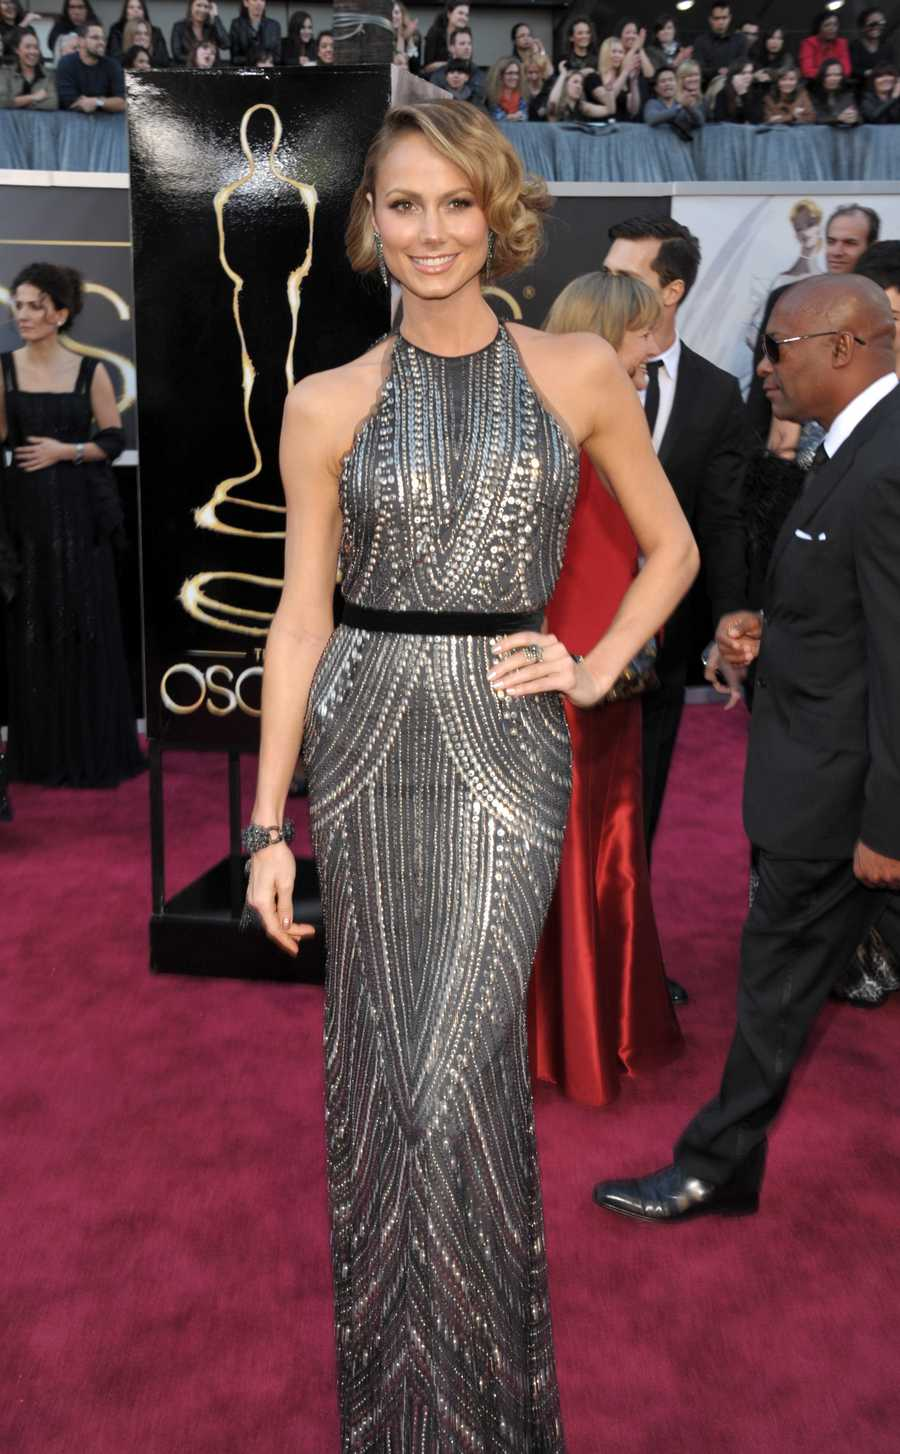 Actress Stacy Keibler arrives at the Oscars at the Dolby Theatre